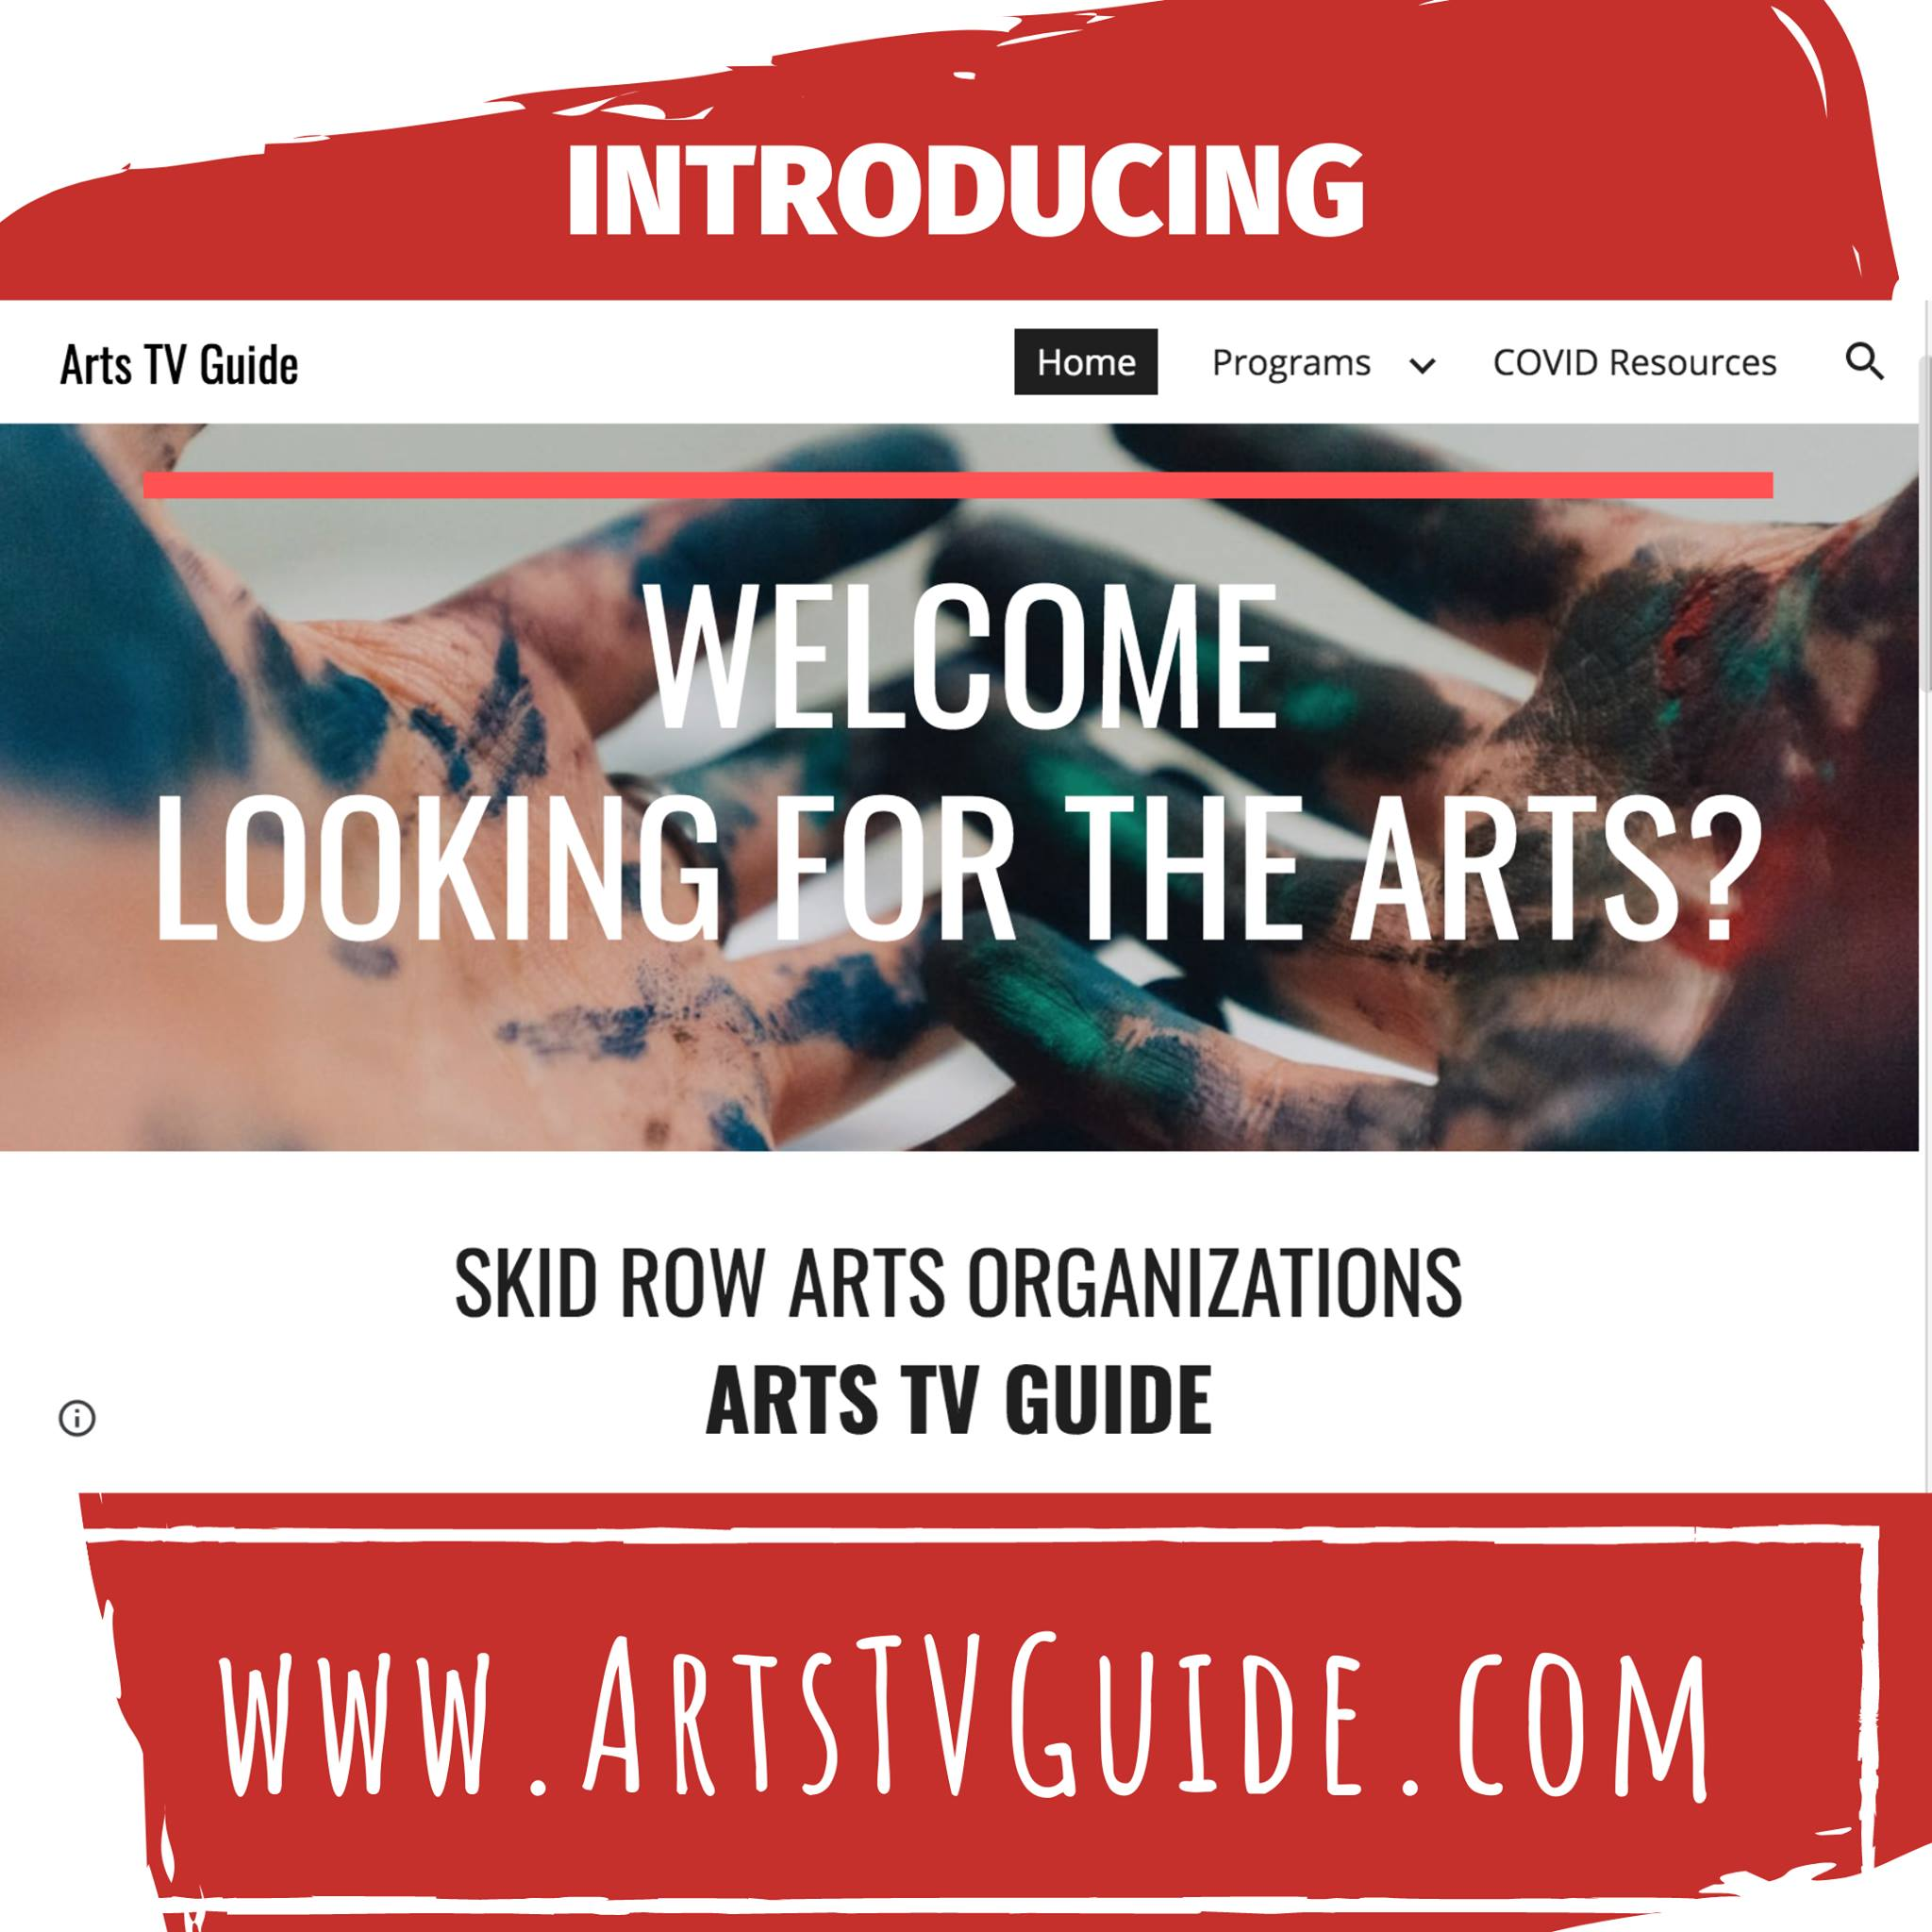 Skid Row homeless COVID_19 info. and Skid Row Arts TV Guide